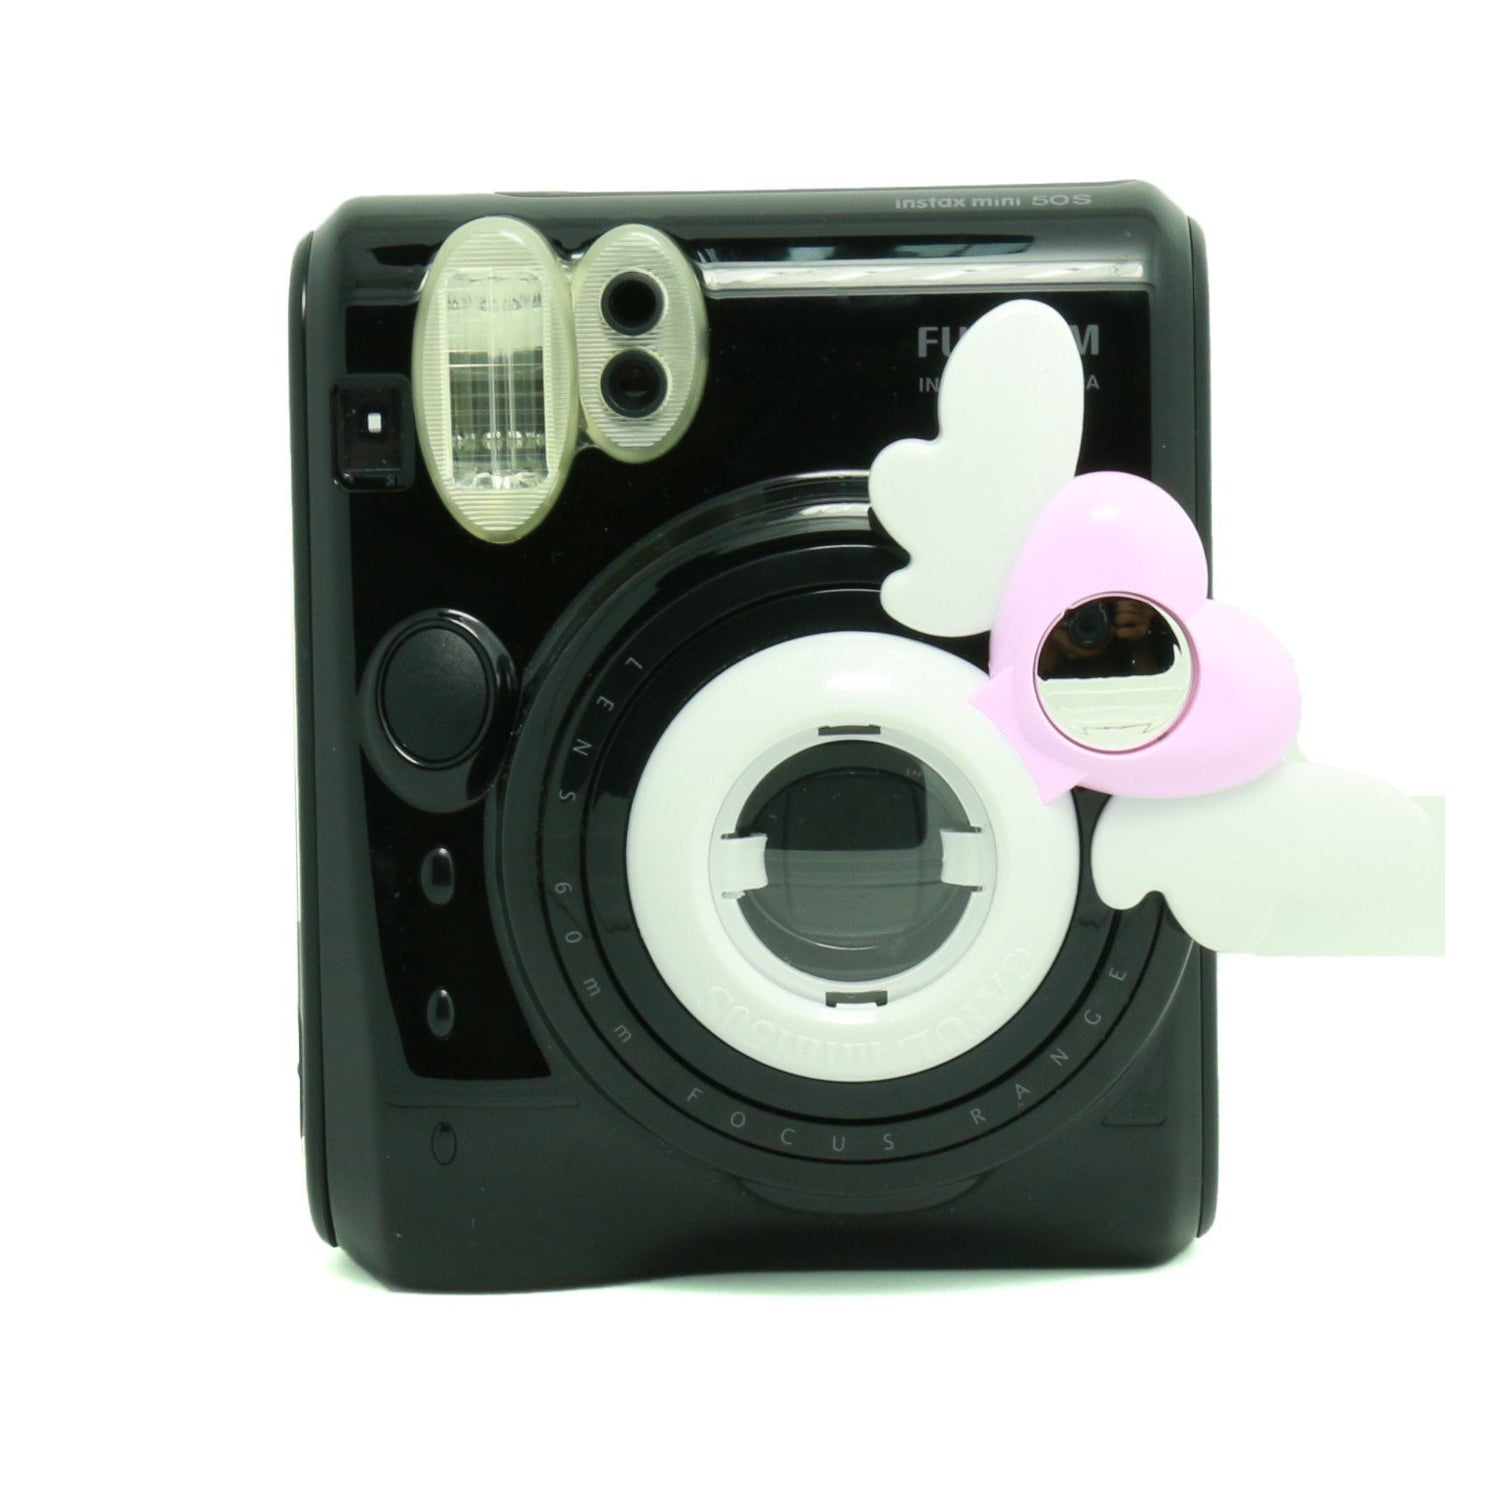 [Fujifilm Instax Mini 50s Selfie Lens]  CAIUL Instax Mini Close Up Lens With Selfportrait Mirror For Fujifilm Instax Mini 50s Camera